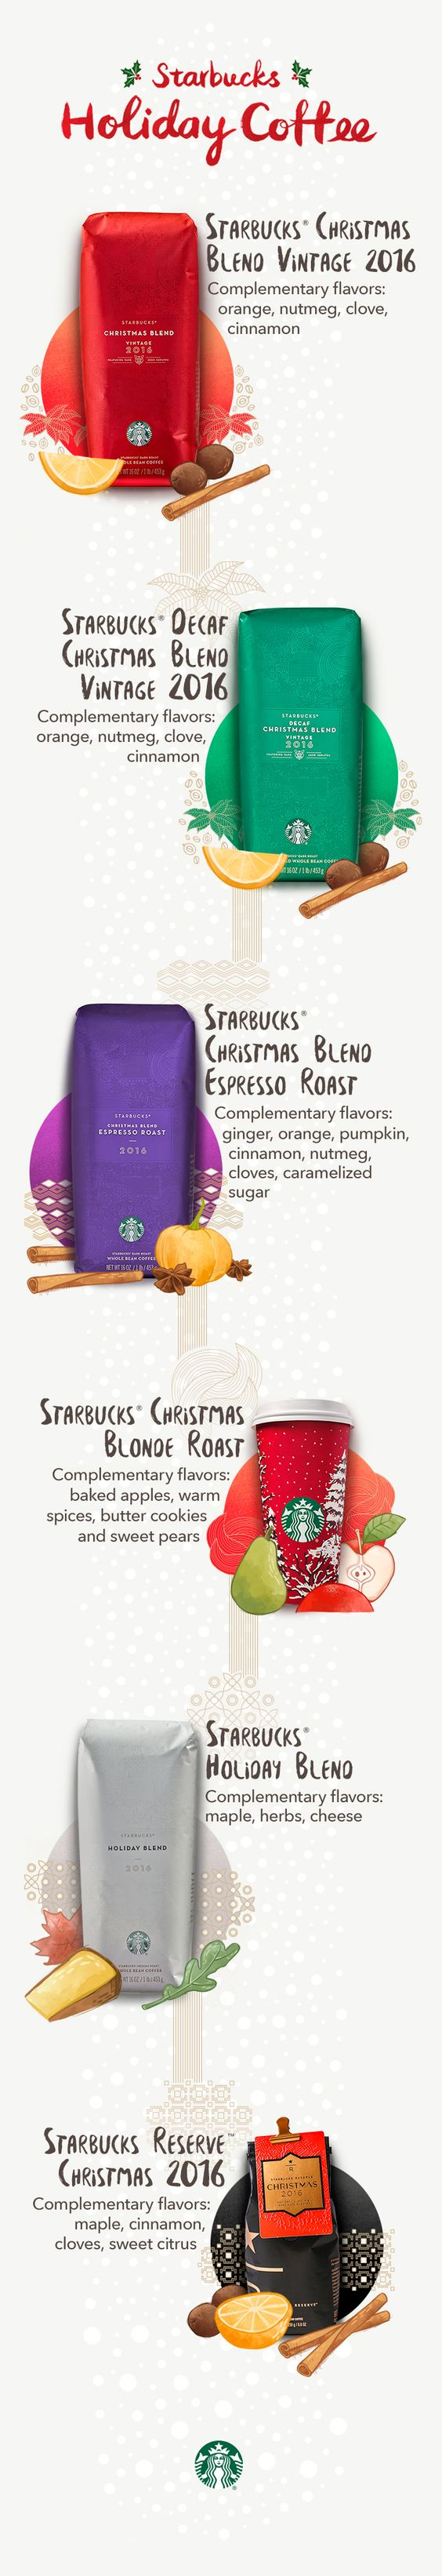 Our holiday coffees are thoughtfully sourced, blended and roasted for this special season. From Starbucks Christmas Blend, which debuted in 1984, to our newest Starbucks Reserve Christmas 2016, discover your favorite.